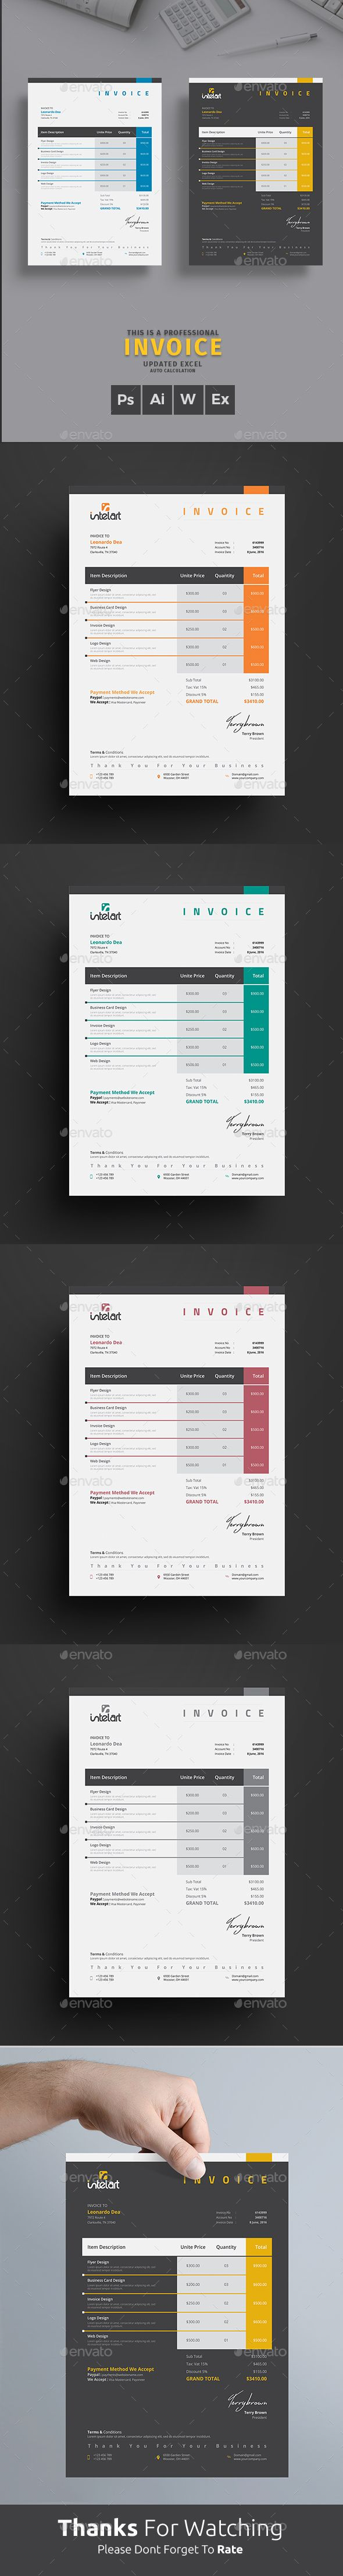 Invoice Credit Terms Pdf Best  Invoice Format In Excel Ideas On Pinterest  Invoice  Target Receipts with Typical Invoice Terms Word Invoice By Themedevisers Invoice Excel Template Use This Clean Invoice For  Personal Corporate Or Company Billing Purpose This Simple Invoice Will  Help Customized Invoice Excel